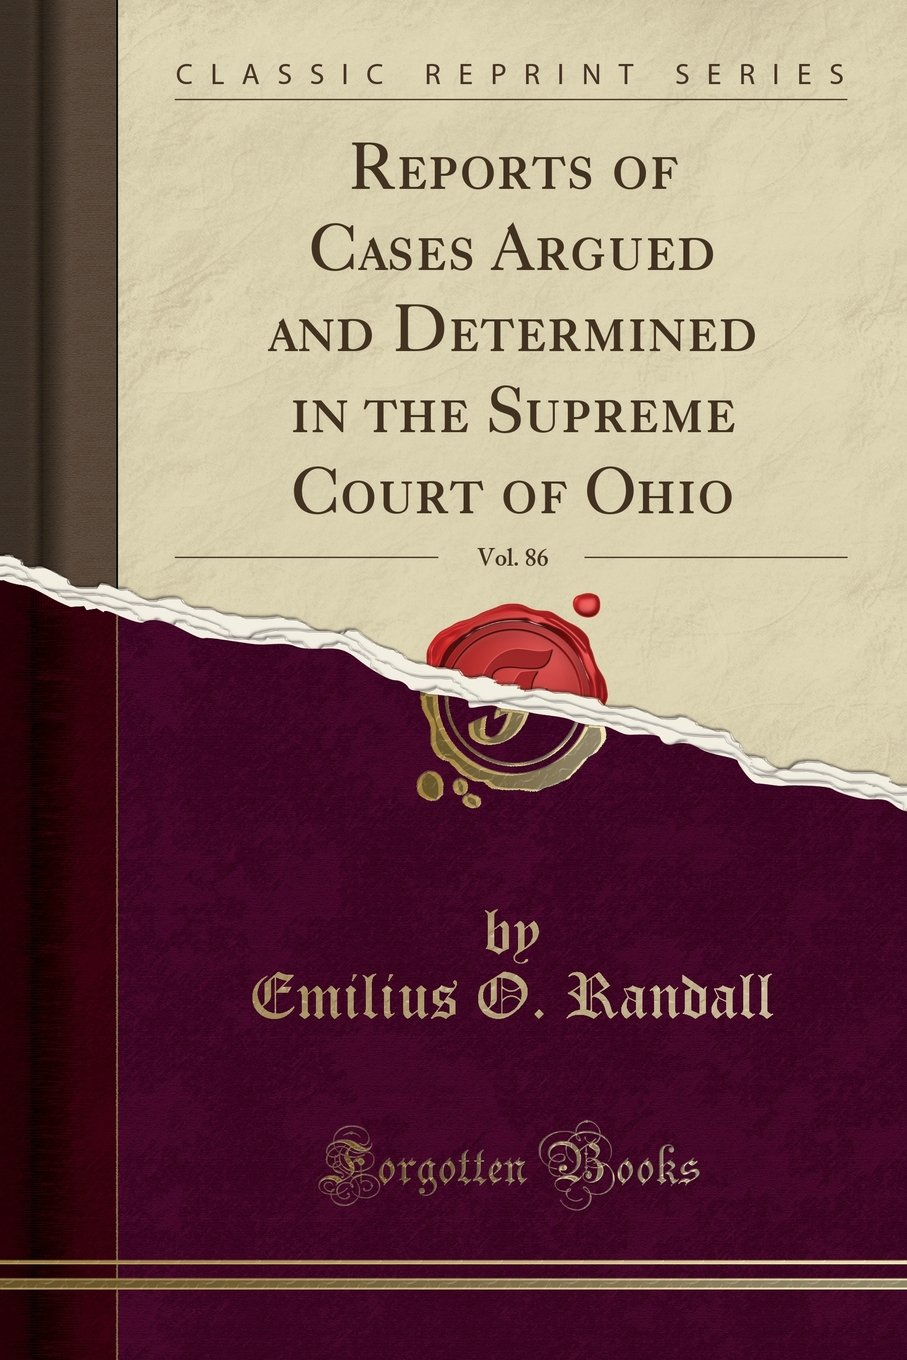 Reports of Cases Argued and Determined in the Supreme Court of Ohio, Vol. 86 (Classic Reprint) ebook